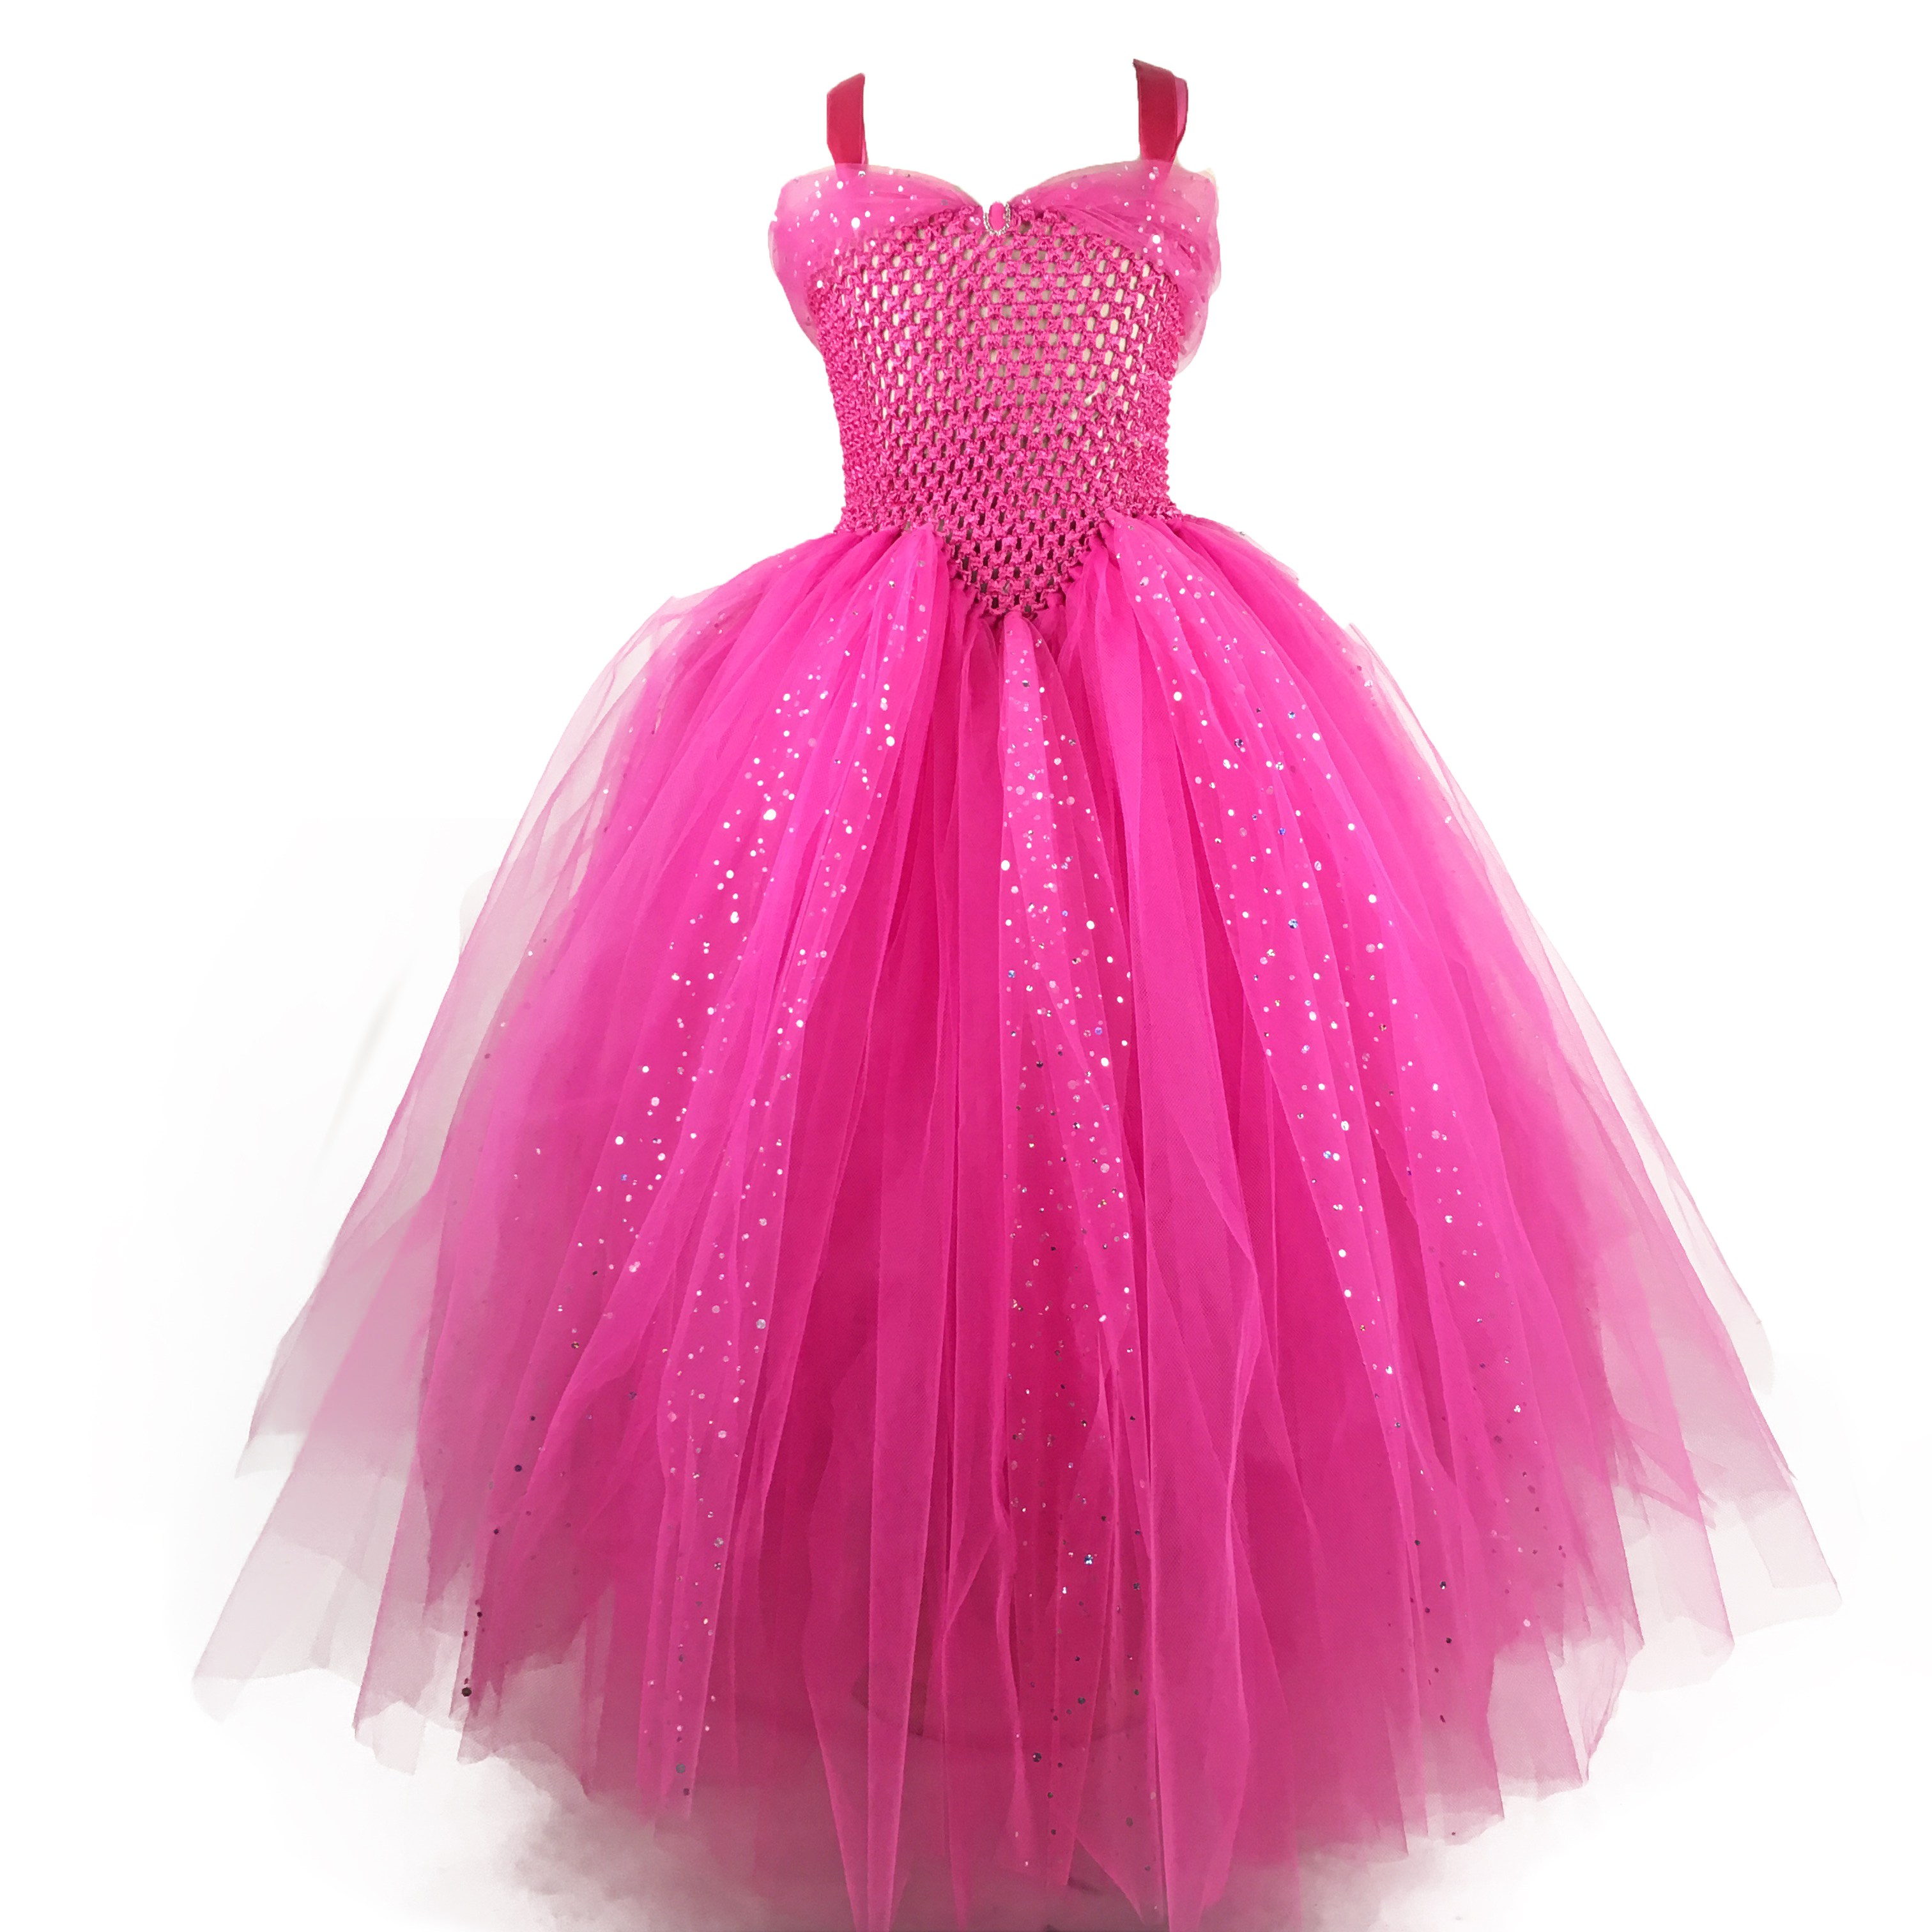 pink sparkly dresses for kids